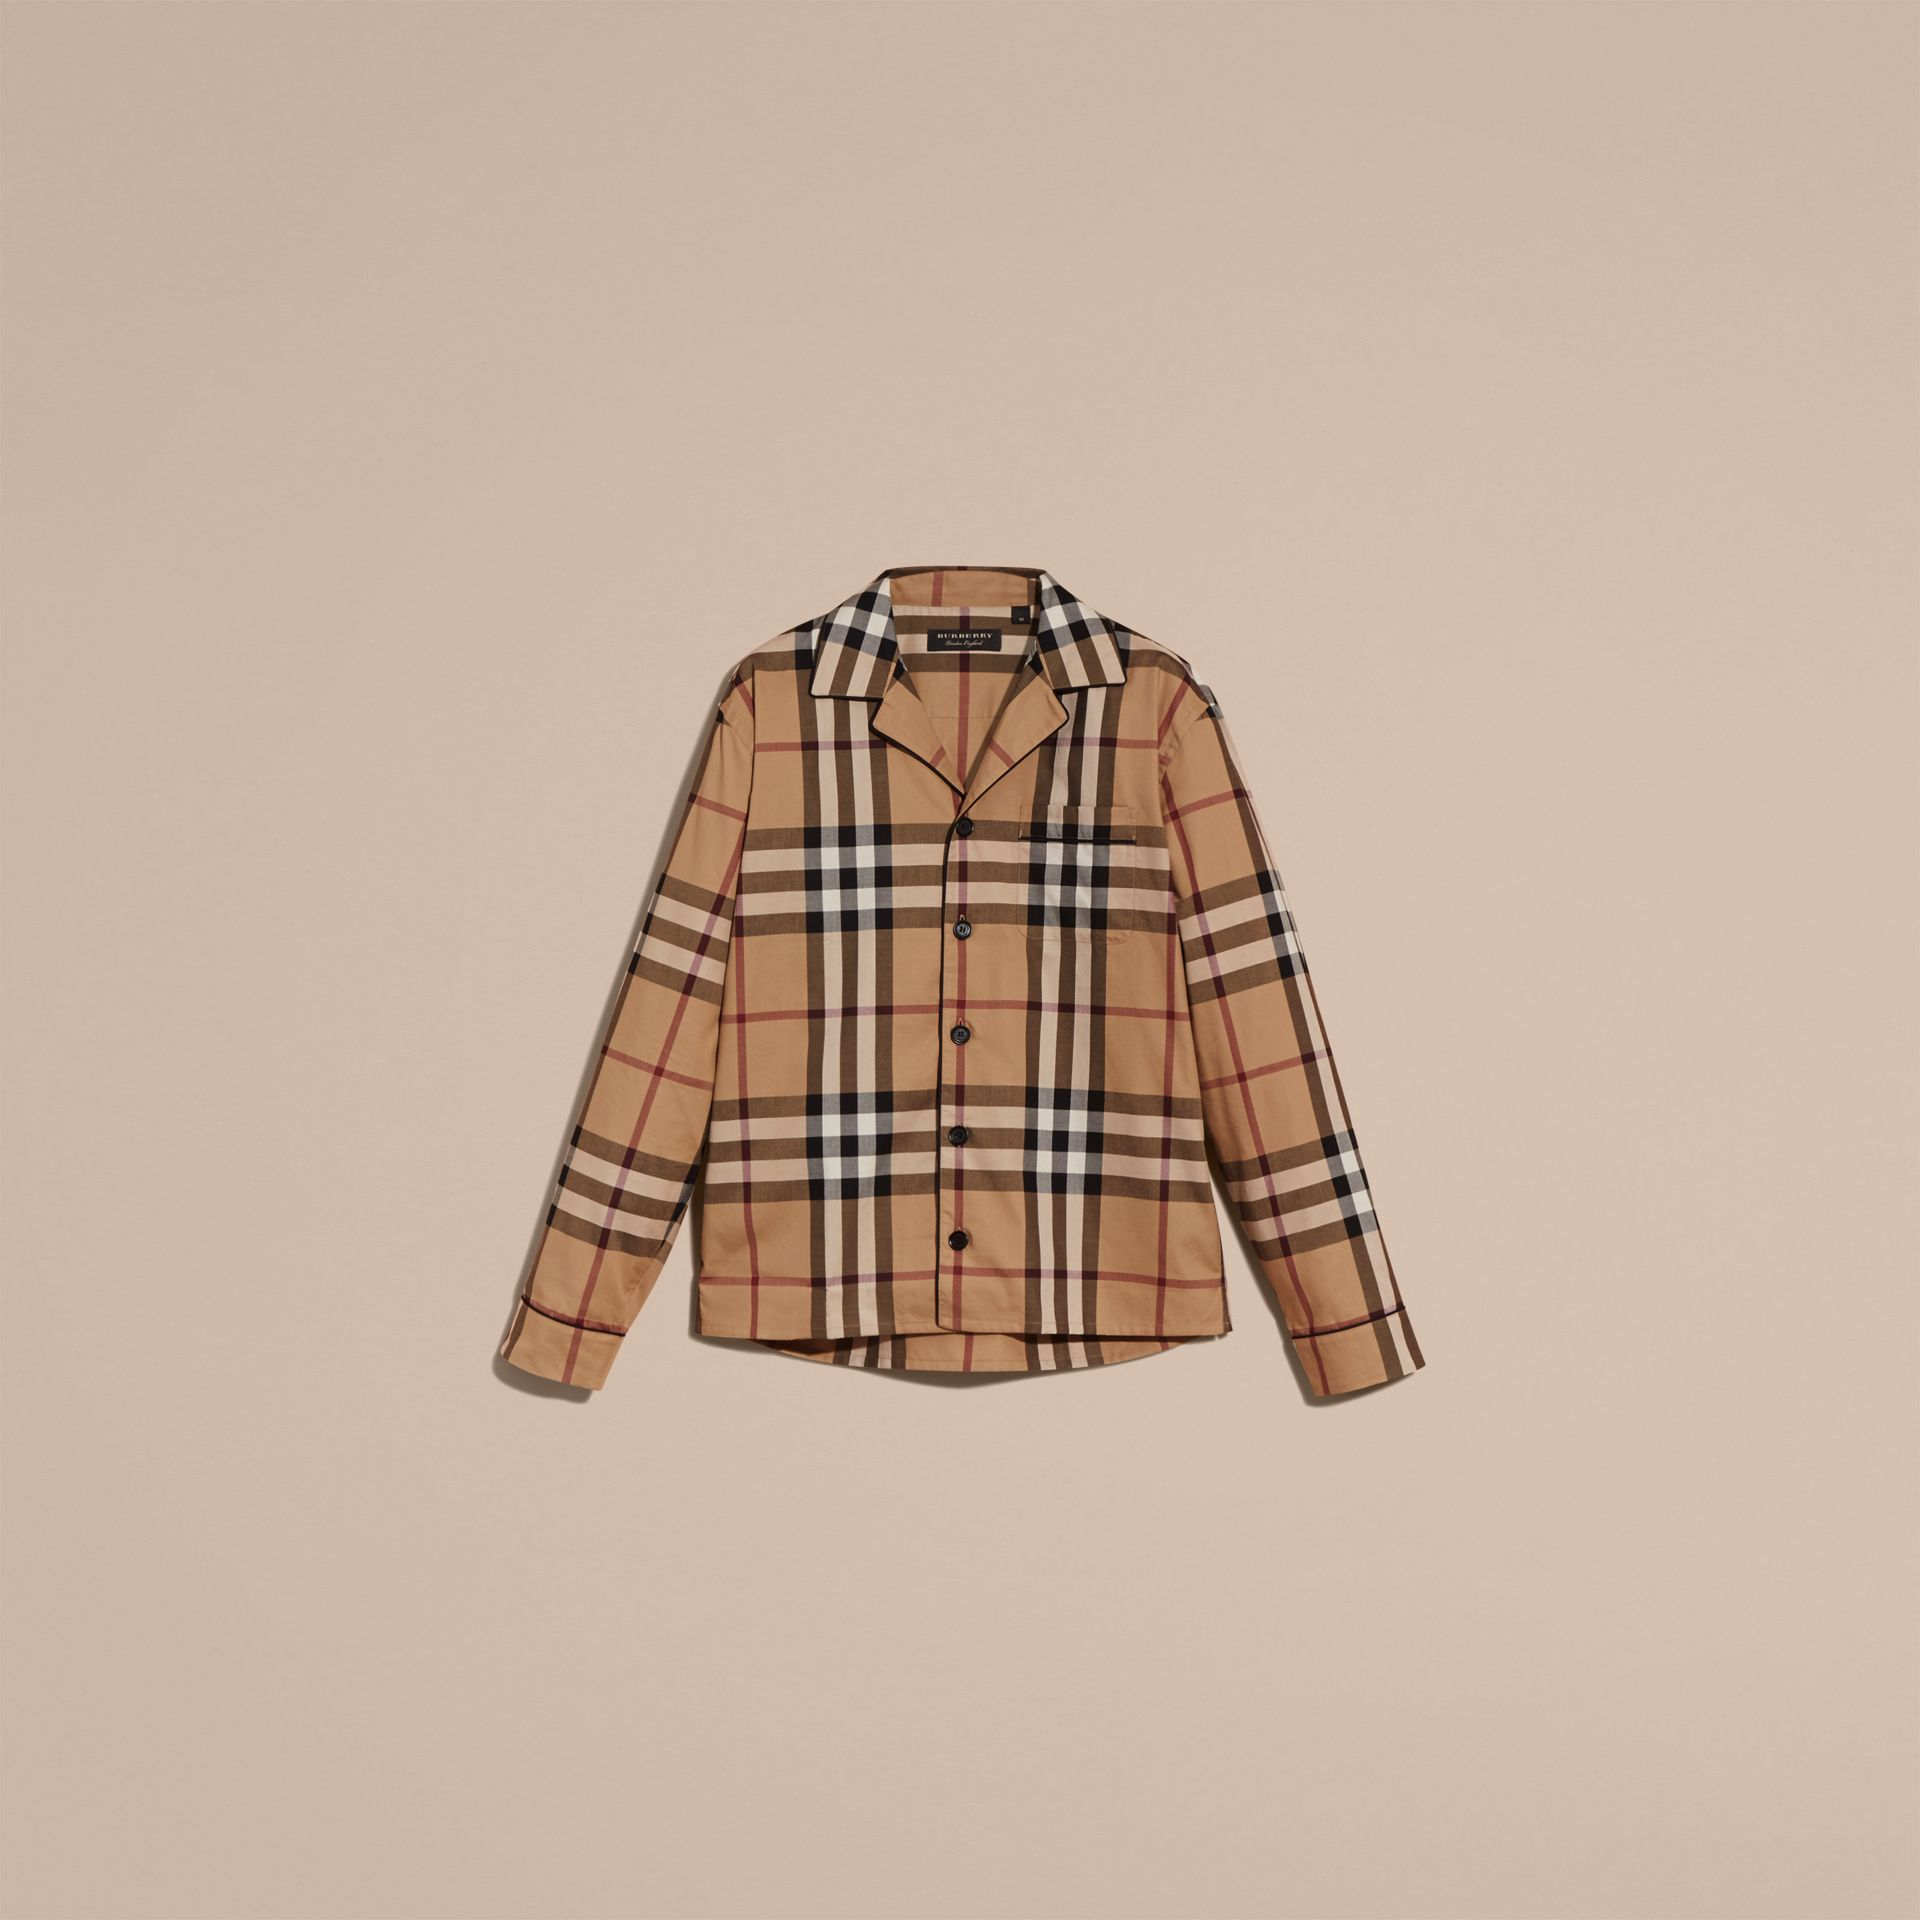 Camel Check Cotton Pyjama-style Shirt Camel - gallery image 5